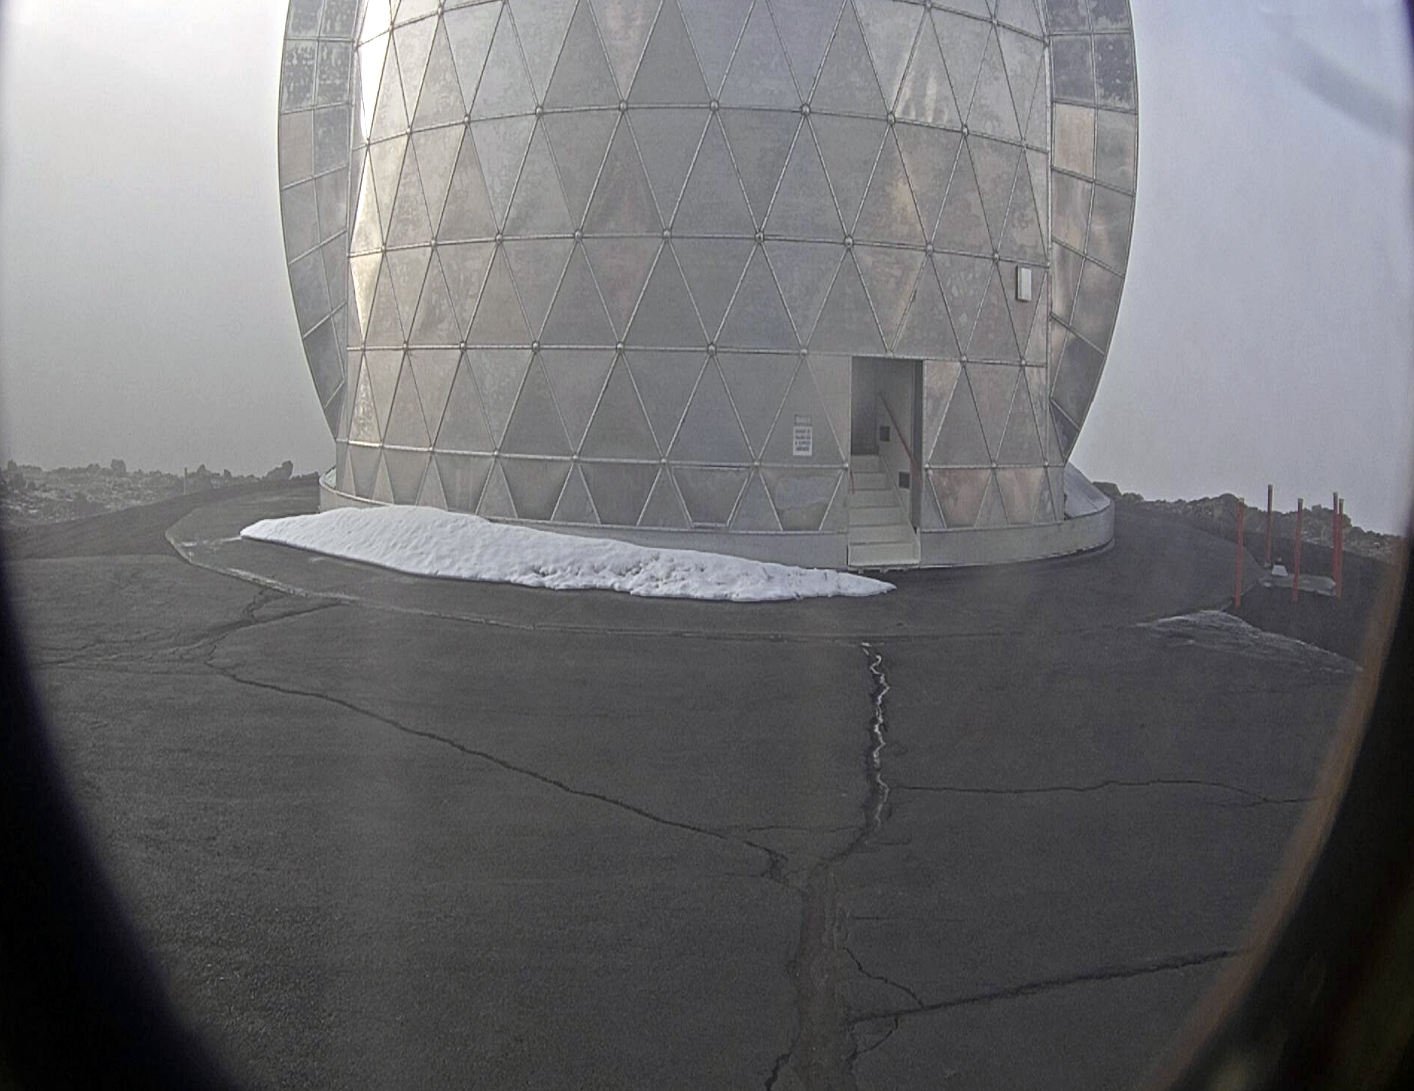 Caltech Submillimeter Observatory on Mauna Kea, Hawaii, Hawaii. April 14 2020, 10:14:58 AM PST